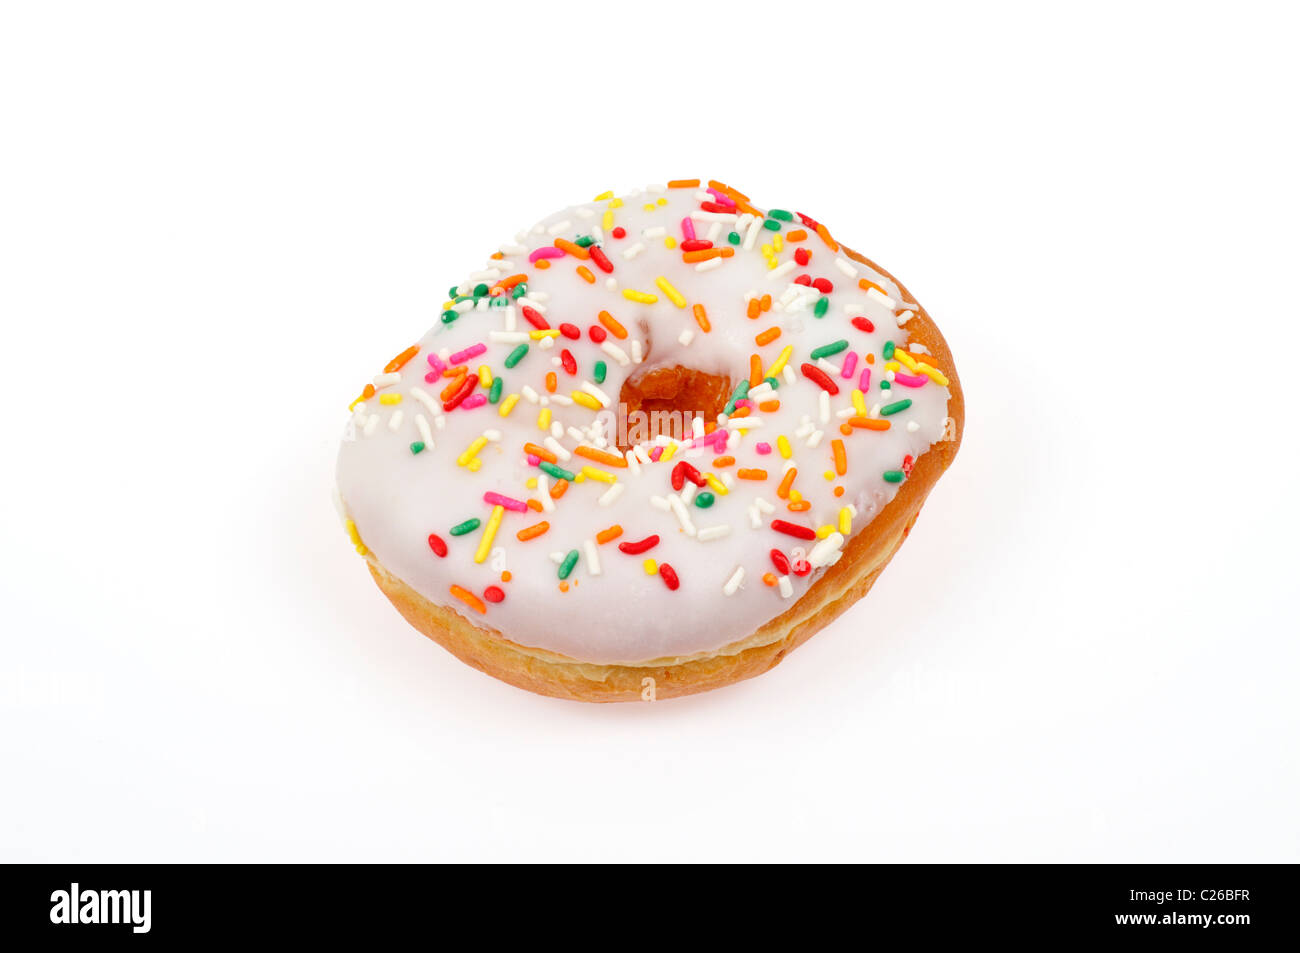 Vanilla frosted ring doughnut with colorful sprinkles on white background cut out - Stock Image